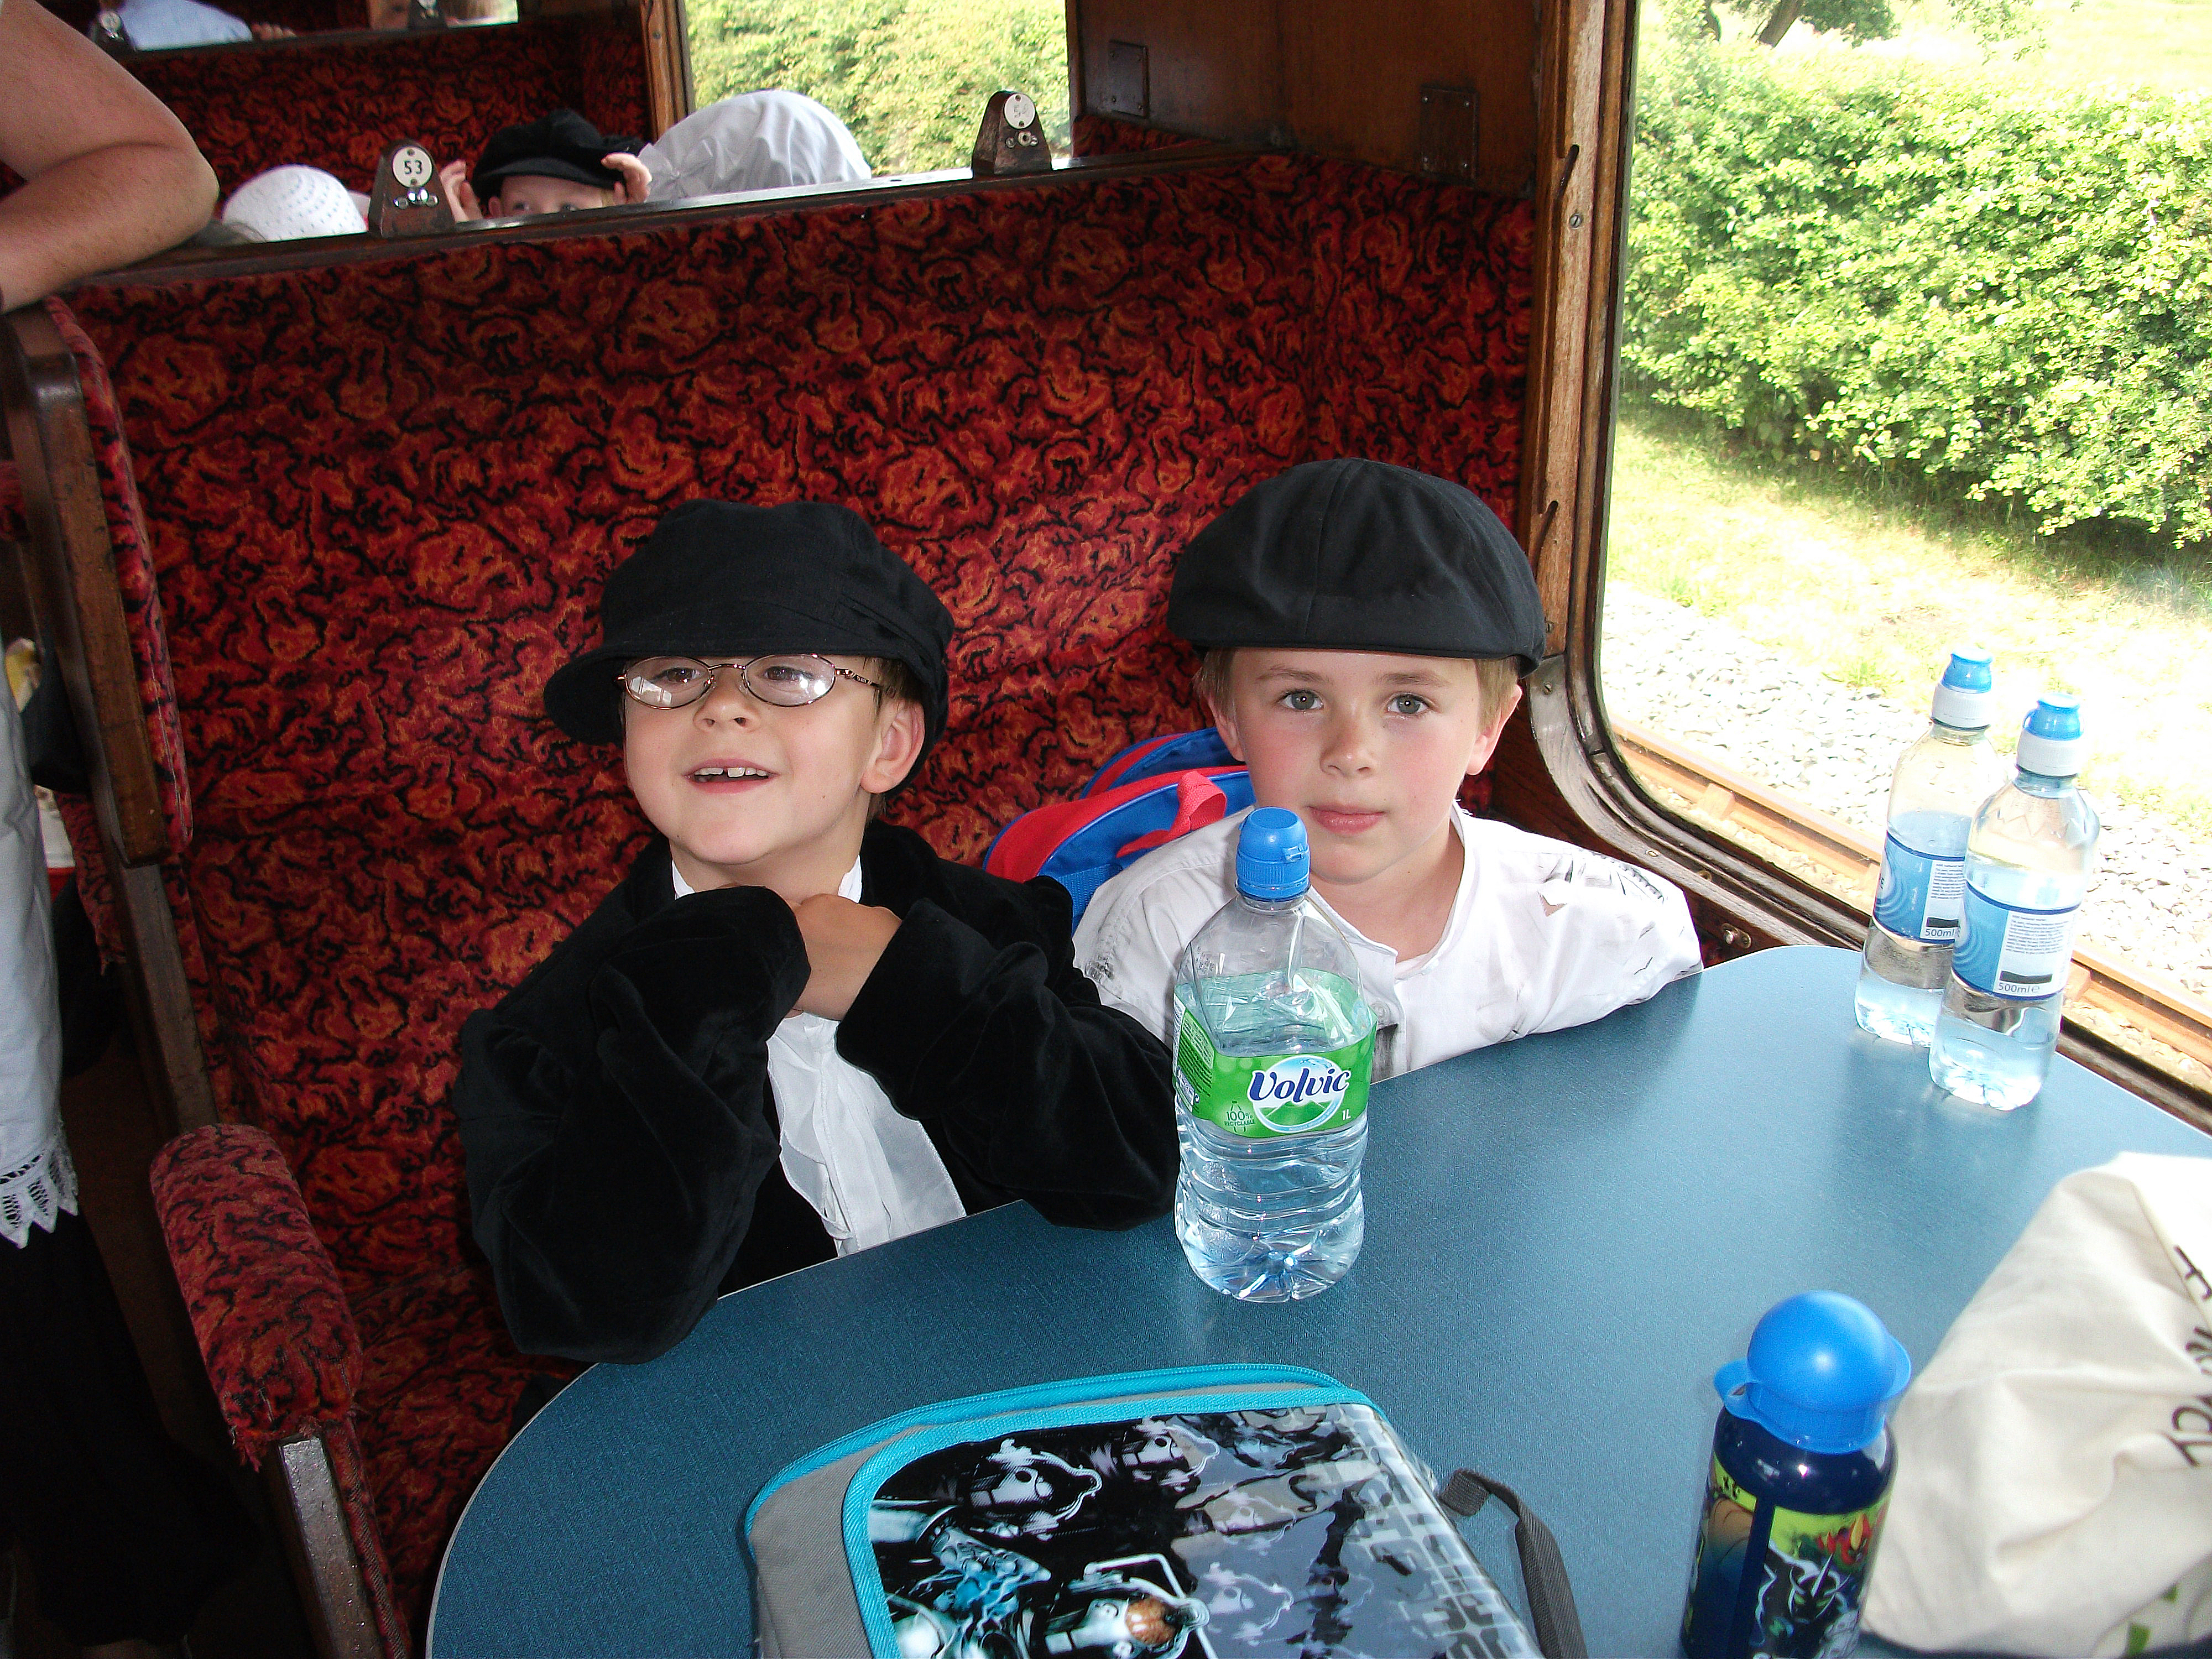 Two 'Victorian' boys are pleased they have modern water bottles during a hot day during their Victorian experience  (at the Kent and East Sussex Railway)